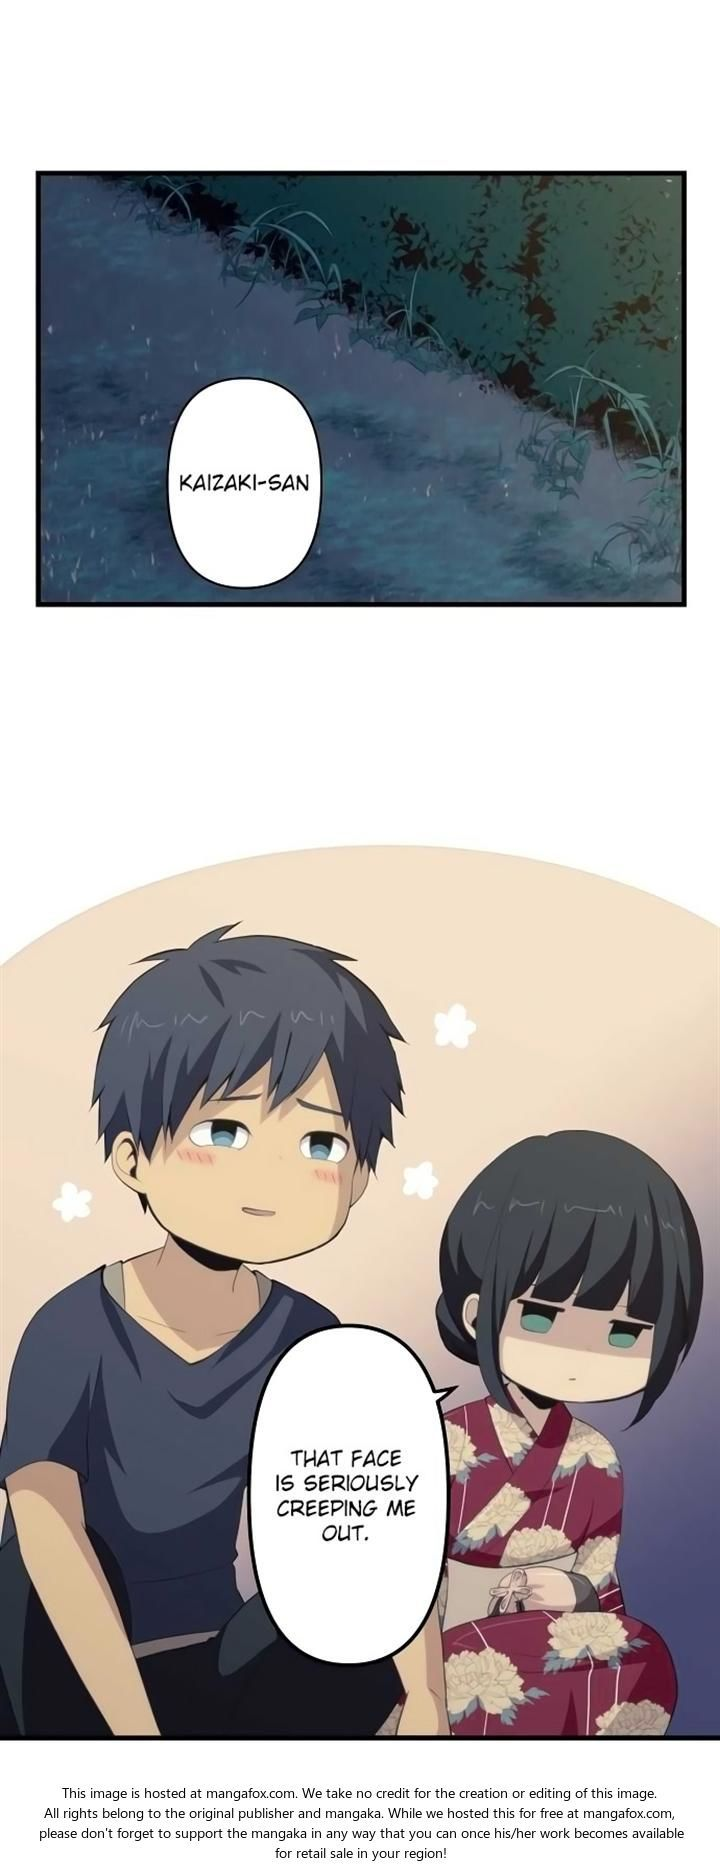 ReLIFE 107 report107. Reflection at MangaFox.me Anime